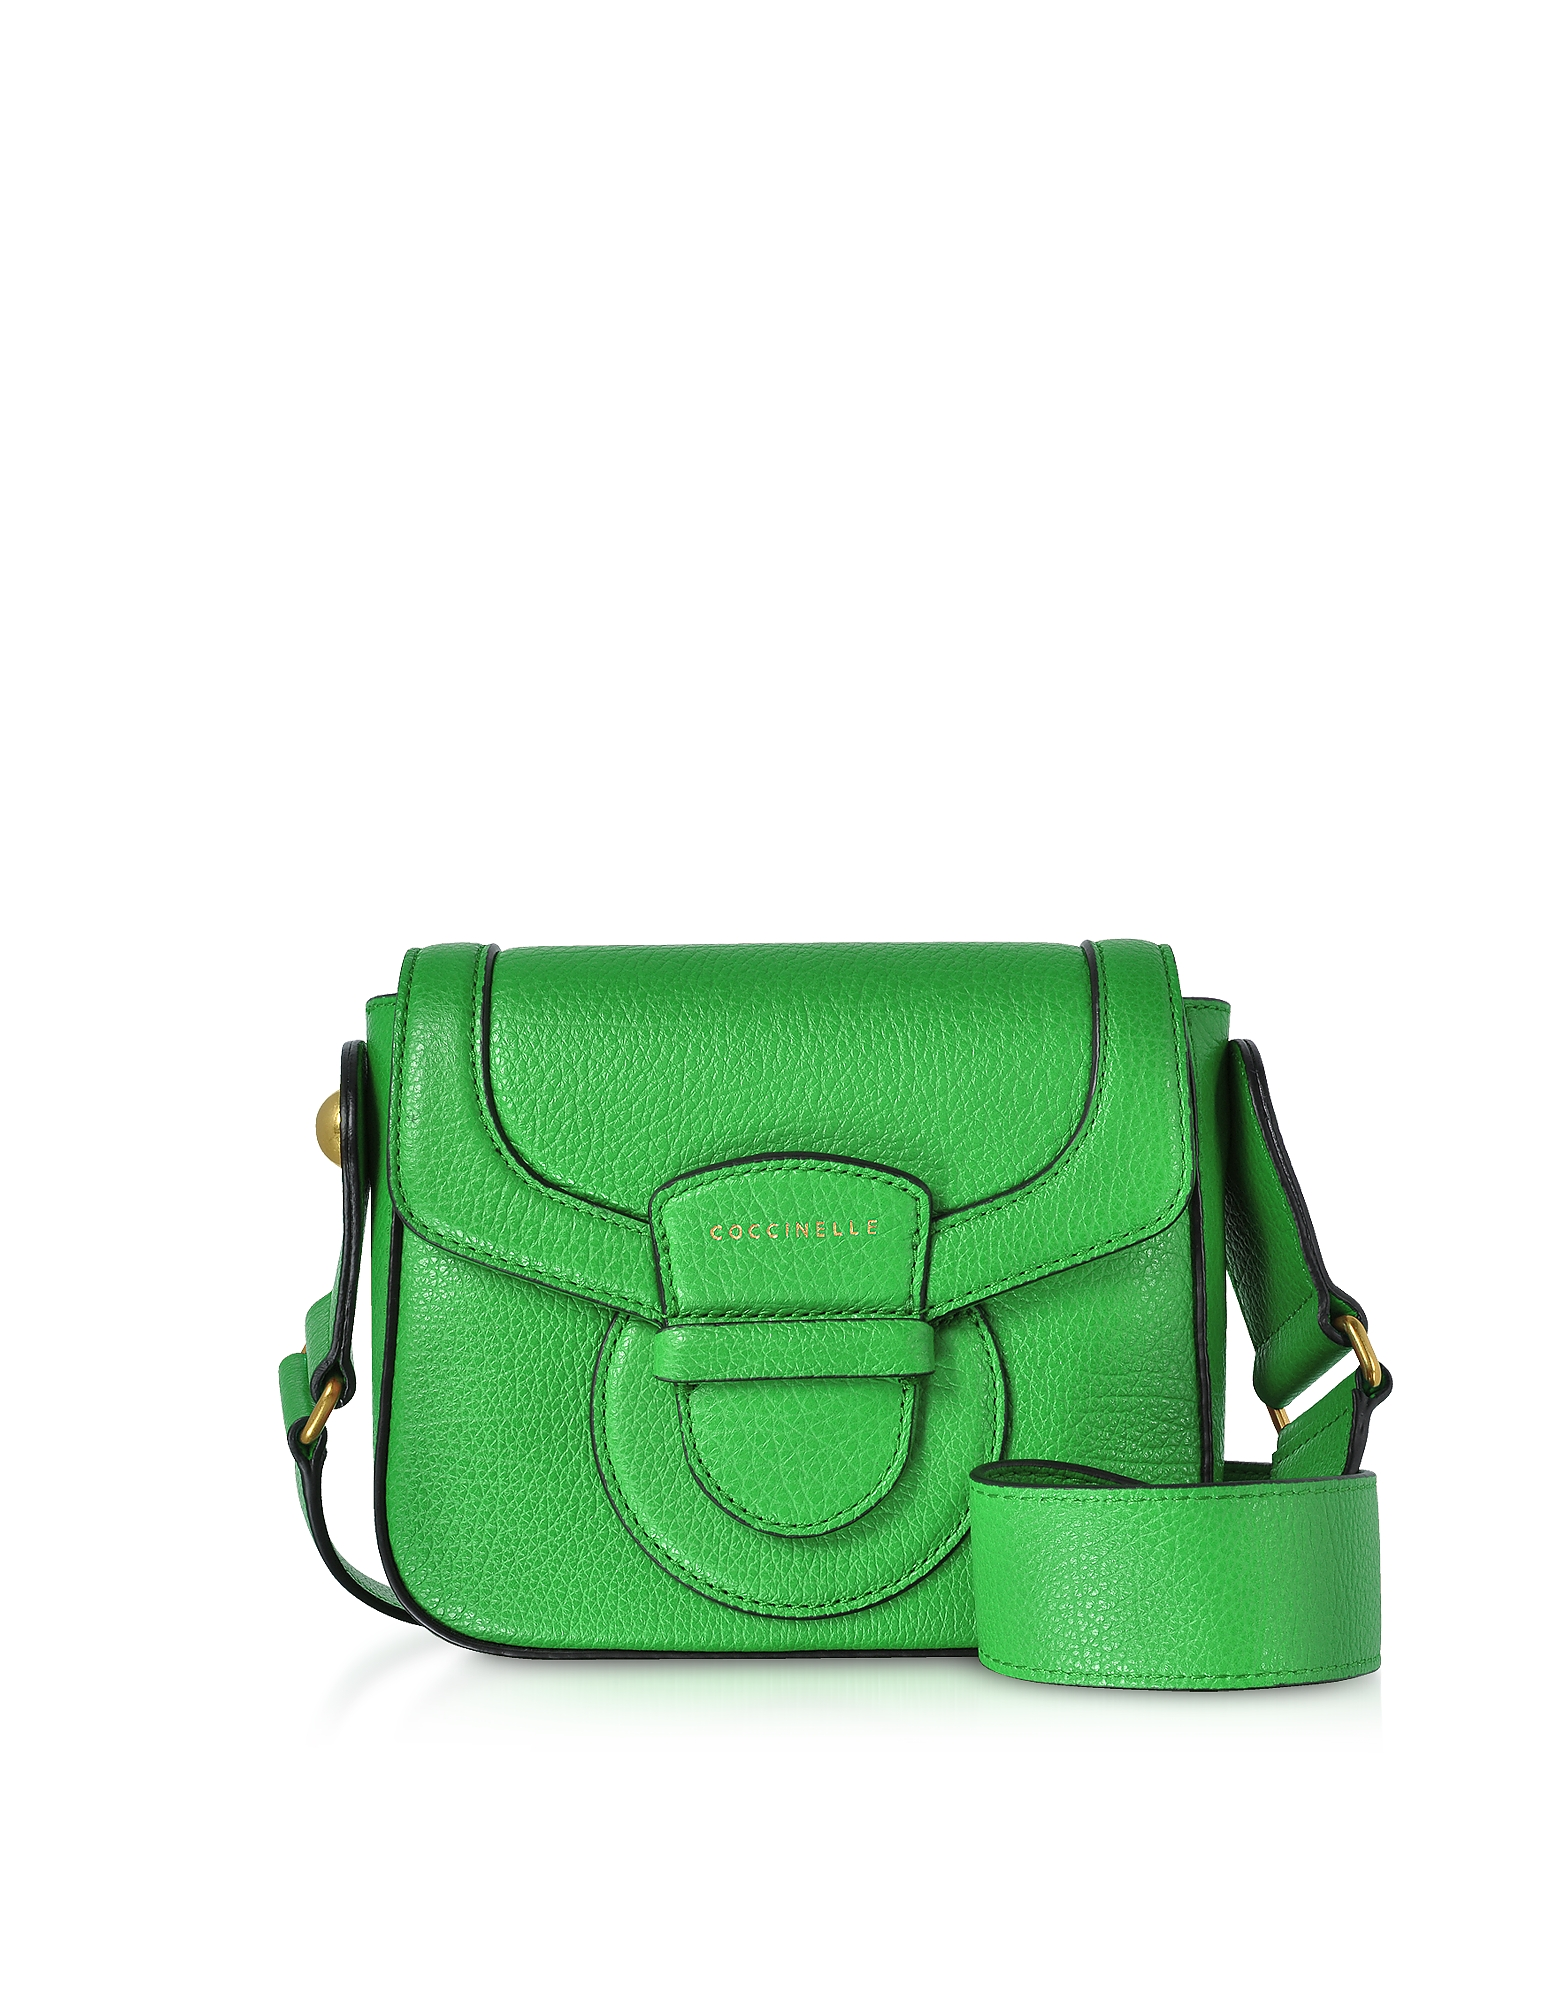 Vega Small Leather Shoulder Bag